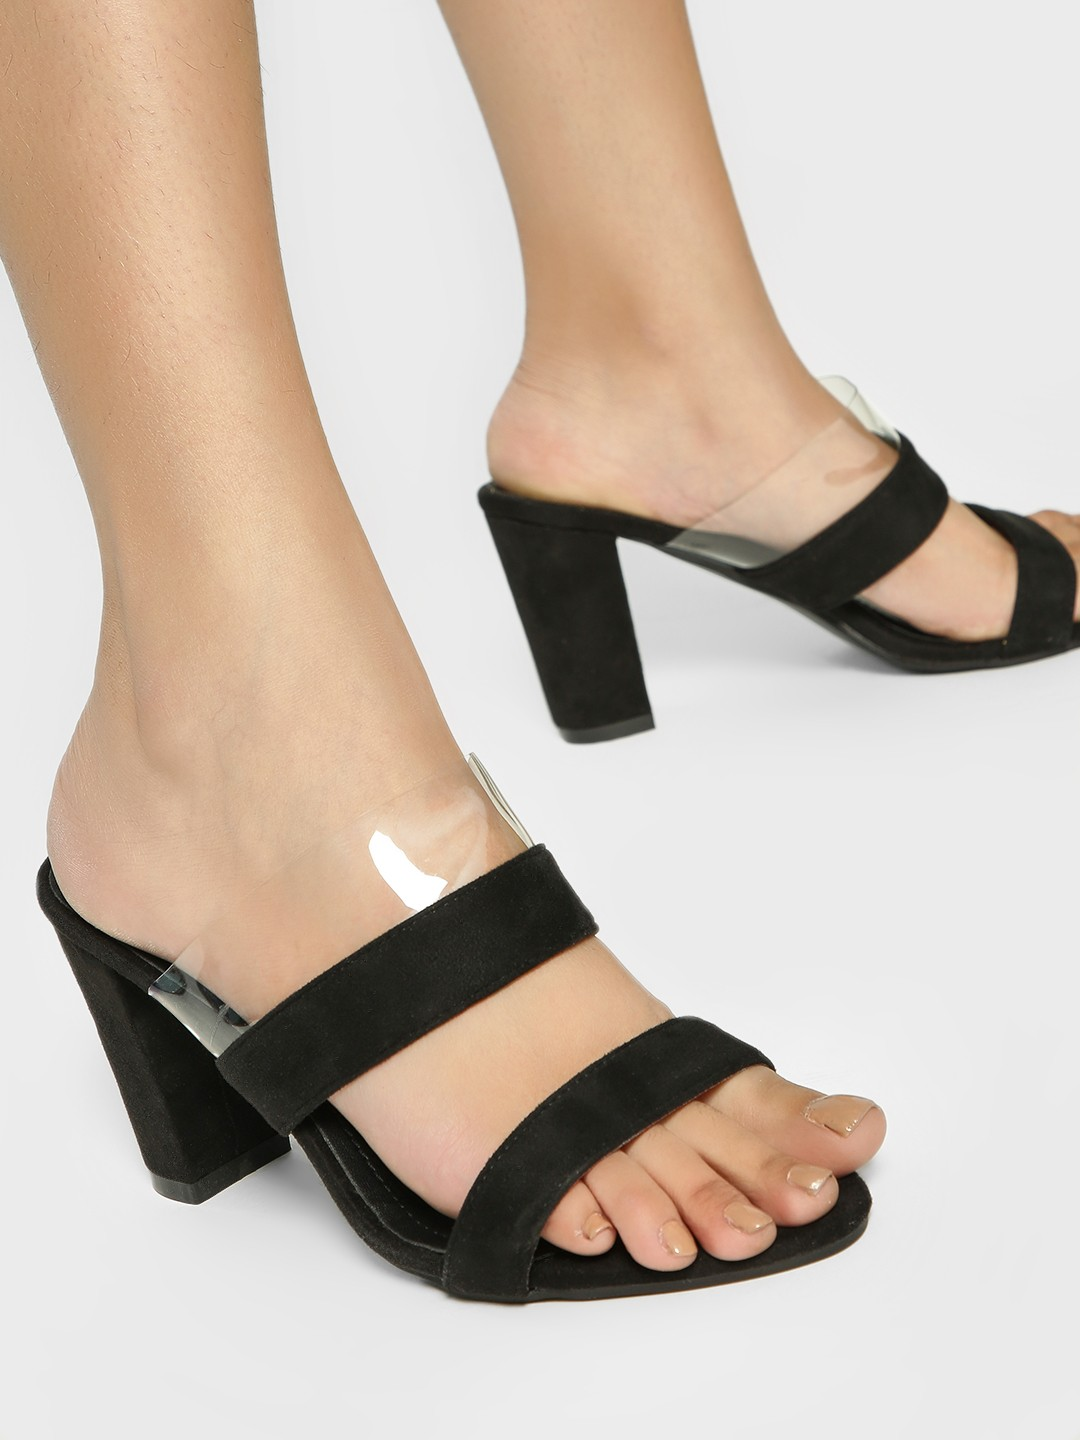 My Foot Couture Black Suede Strap Block Heel Sandals 1